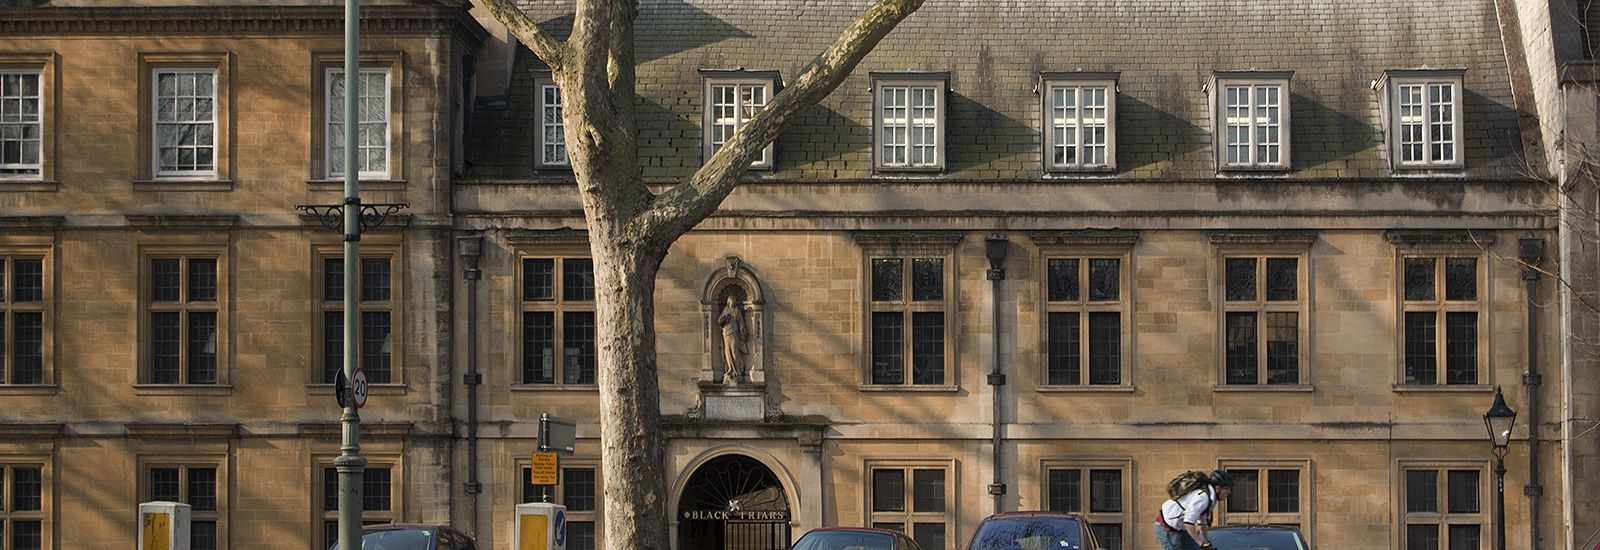 Blackfriars College building behind a tree